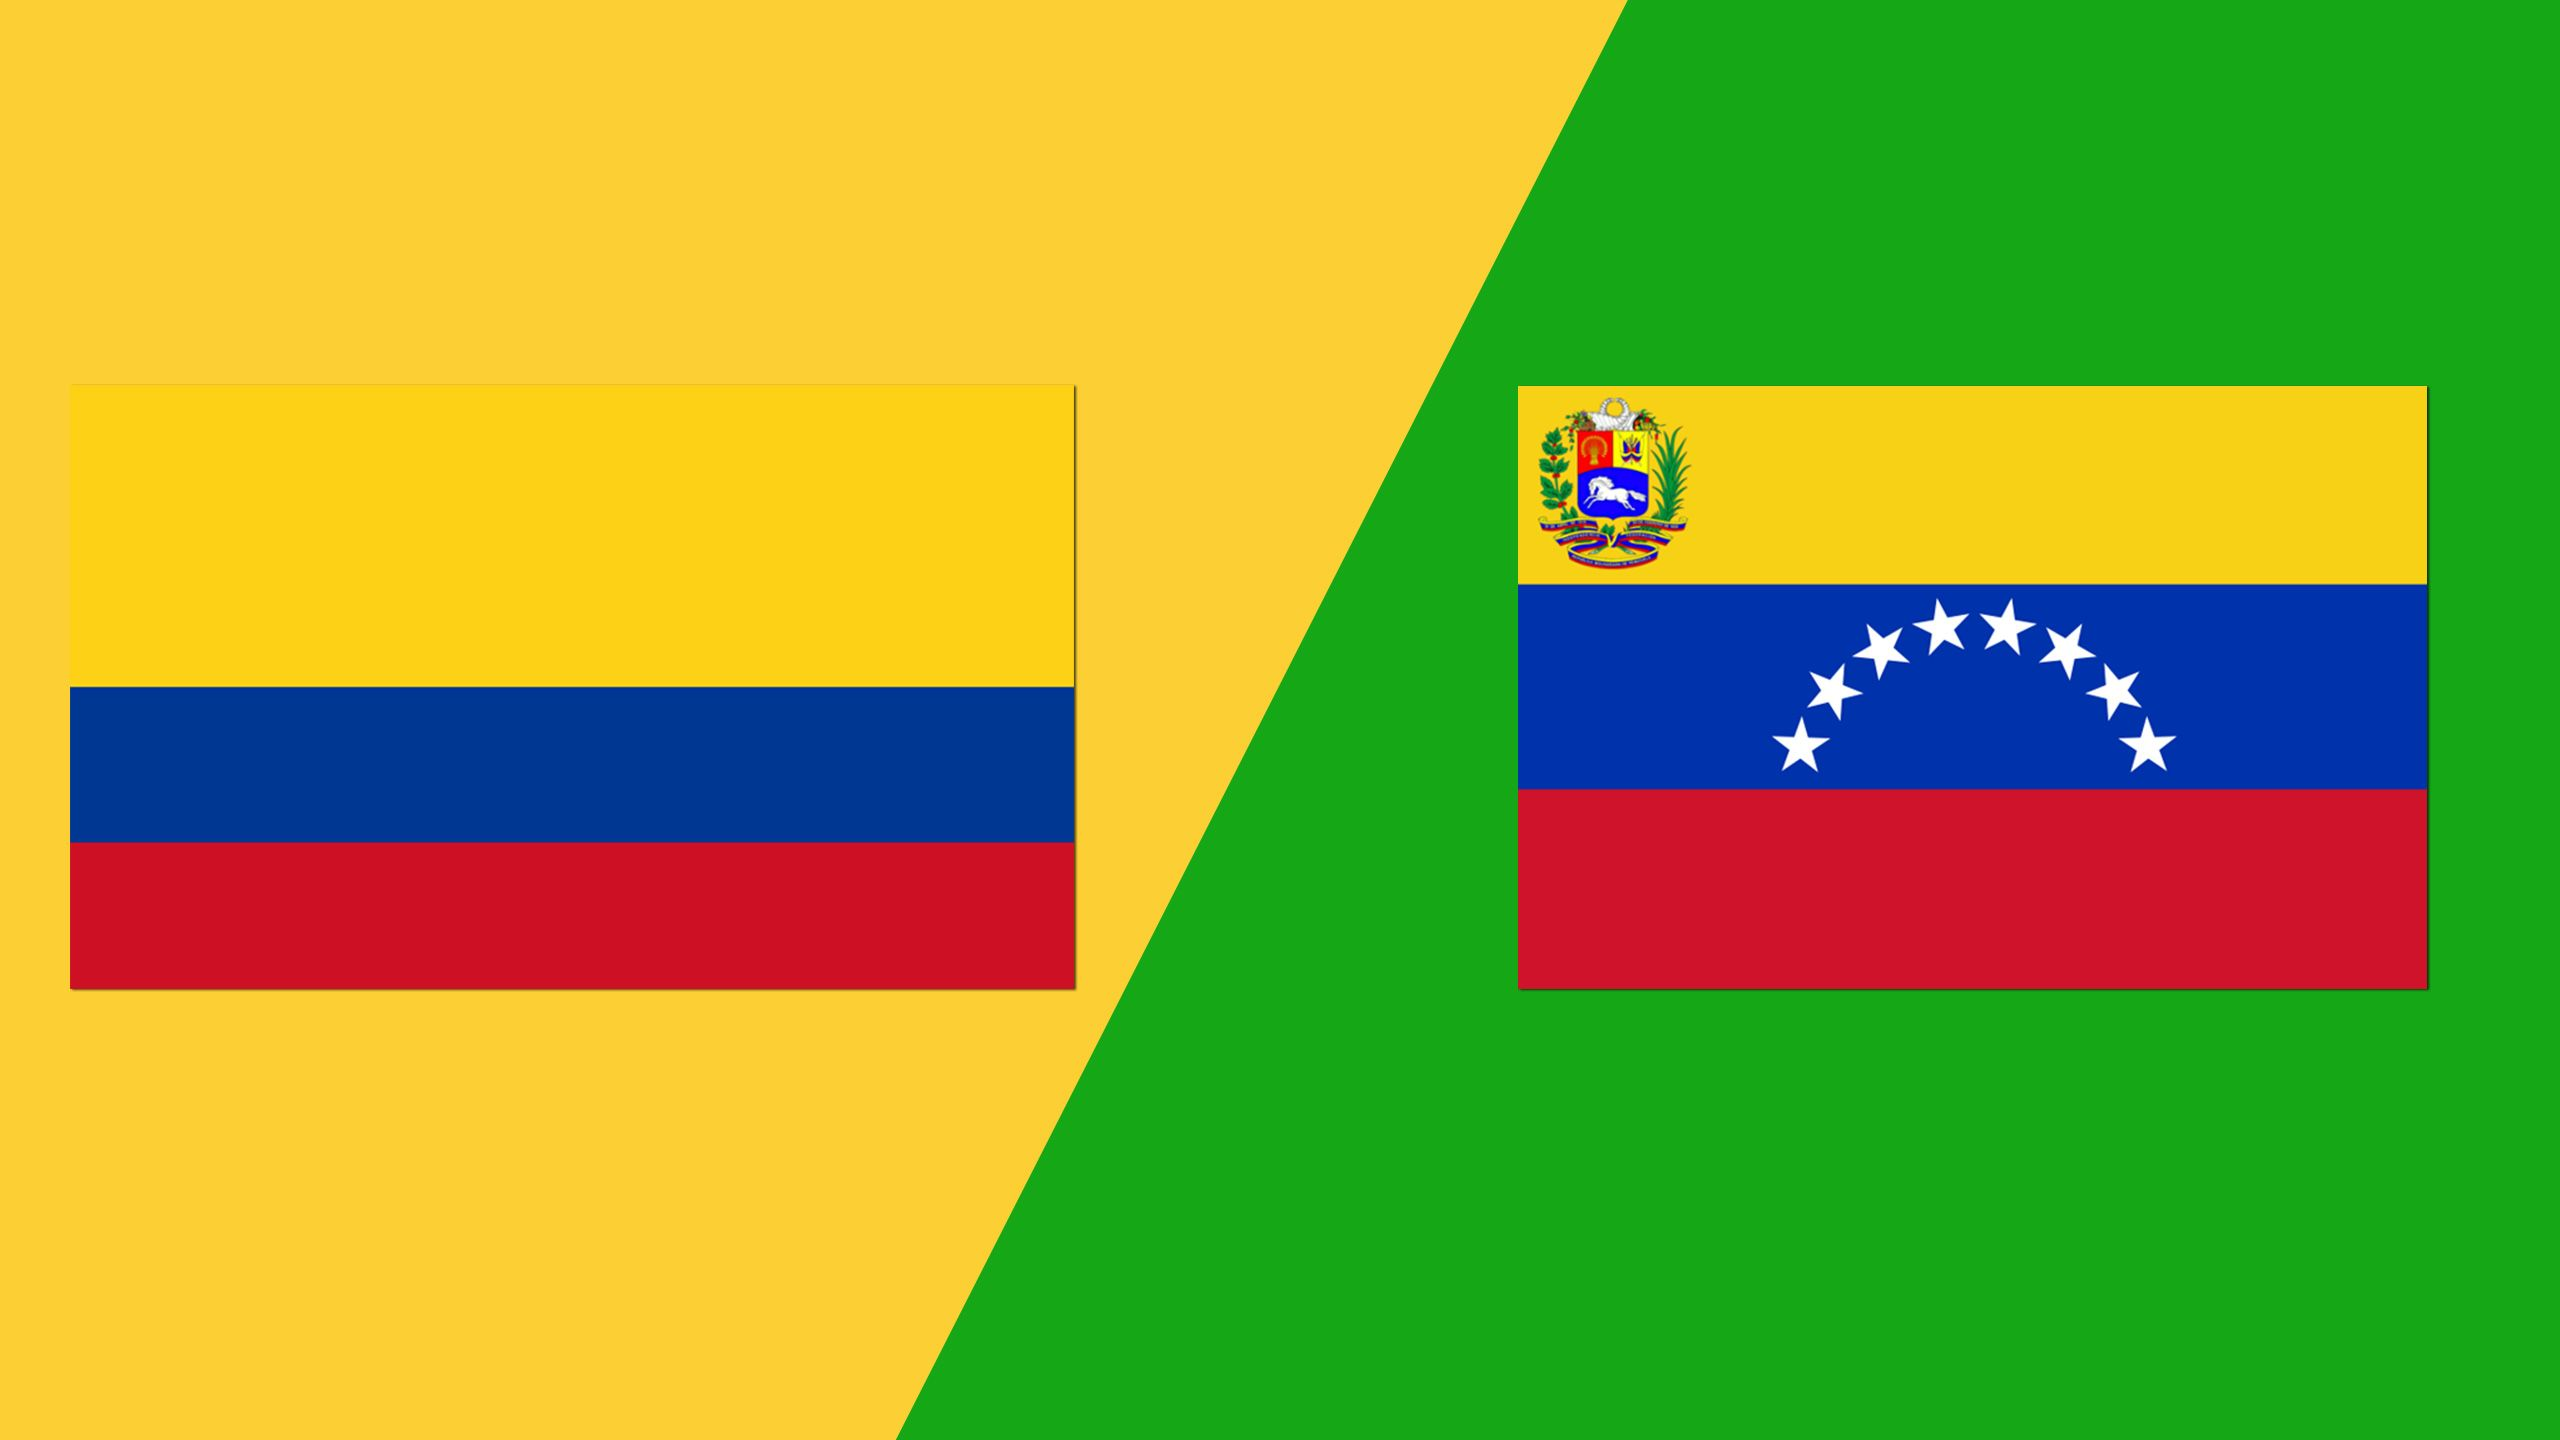 In Spanish - Colombia vs. Venezuela (Grupo A)